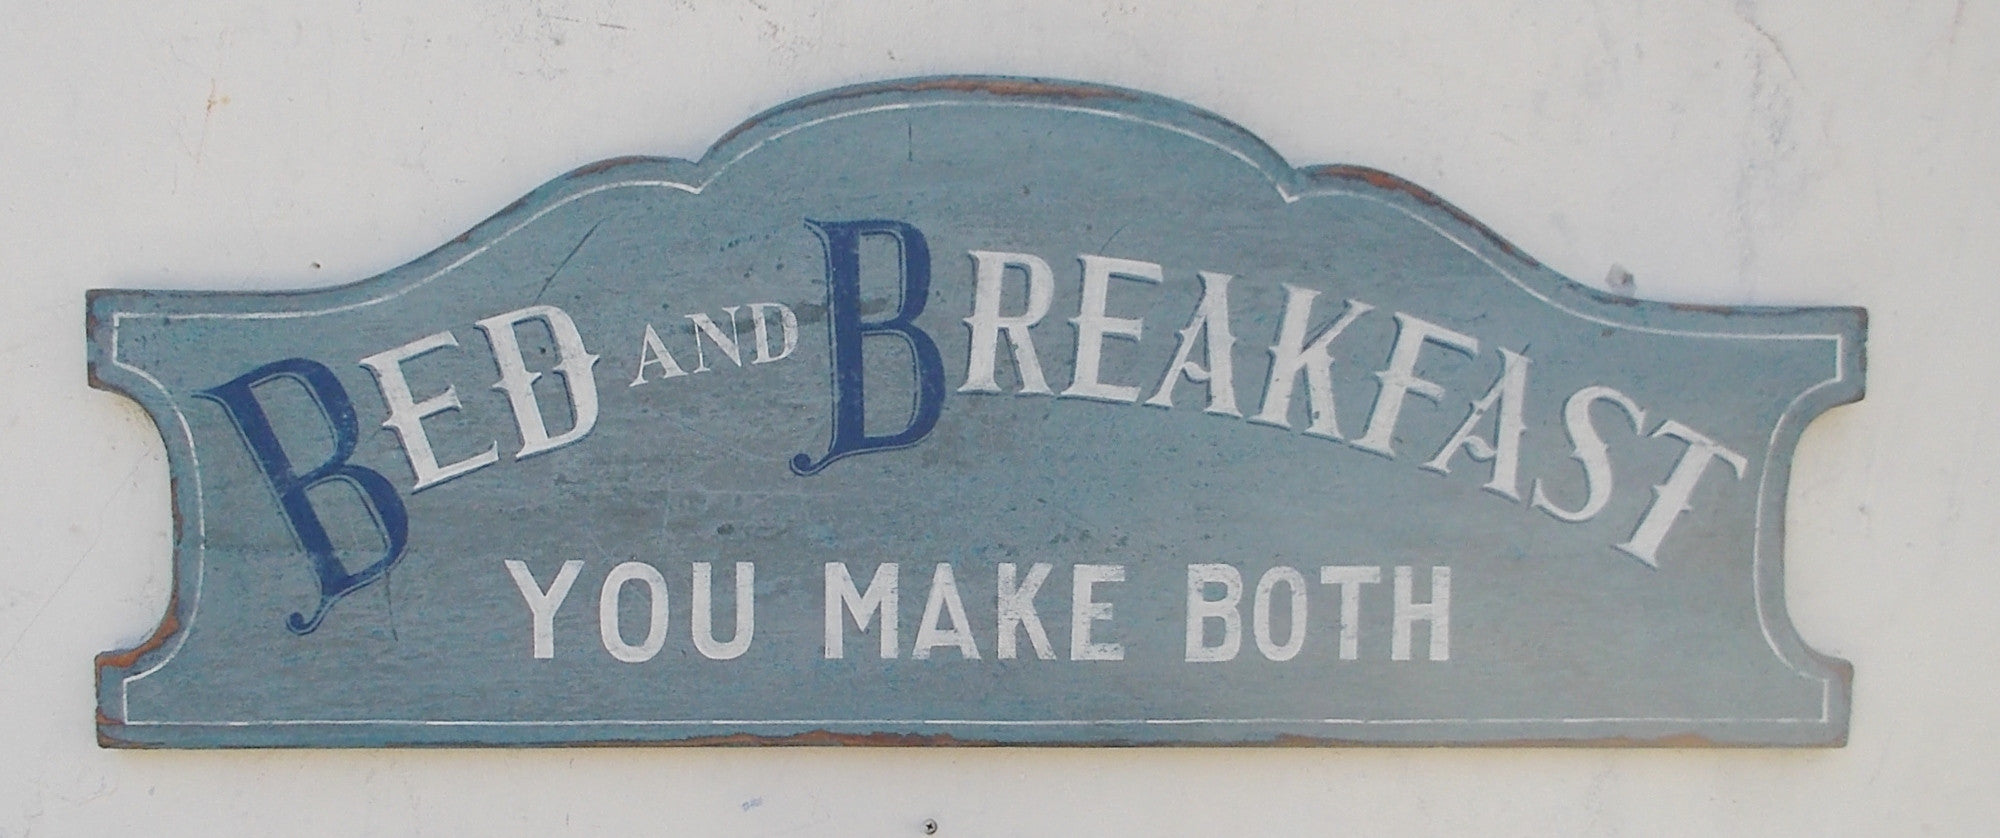 Bed and Breakfast (You Make Booth)